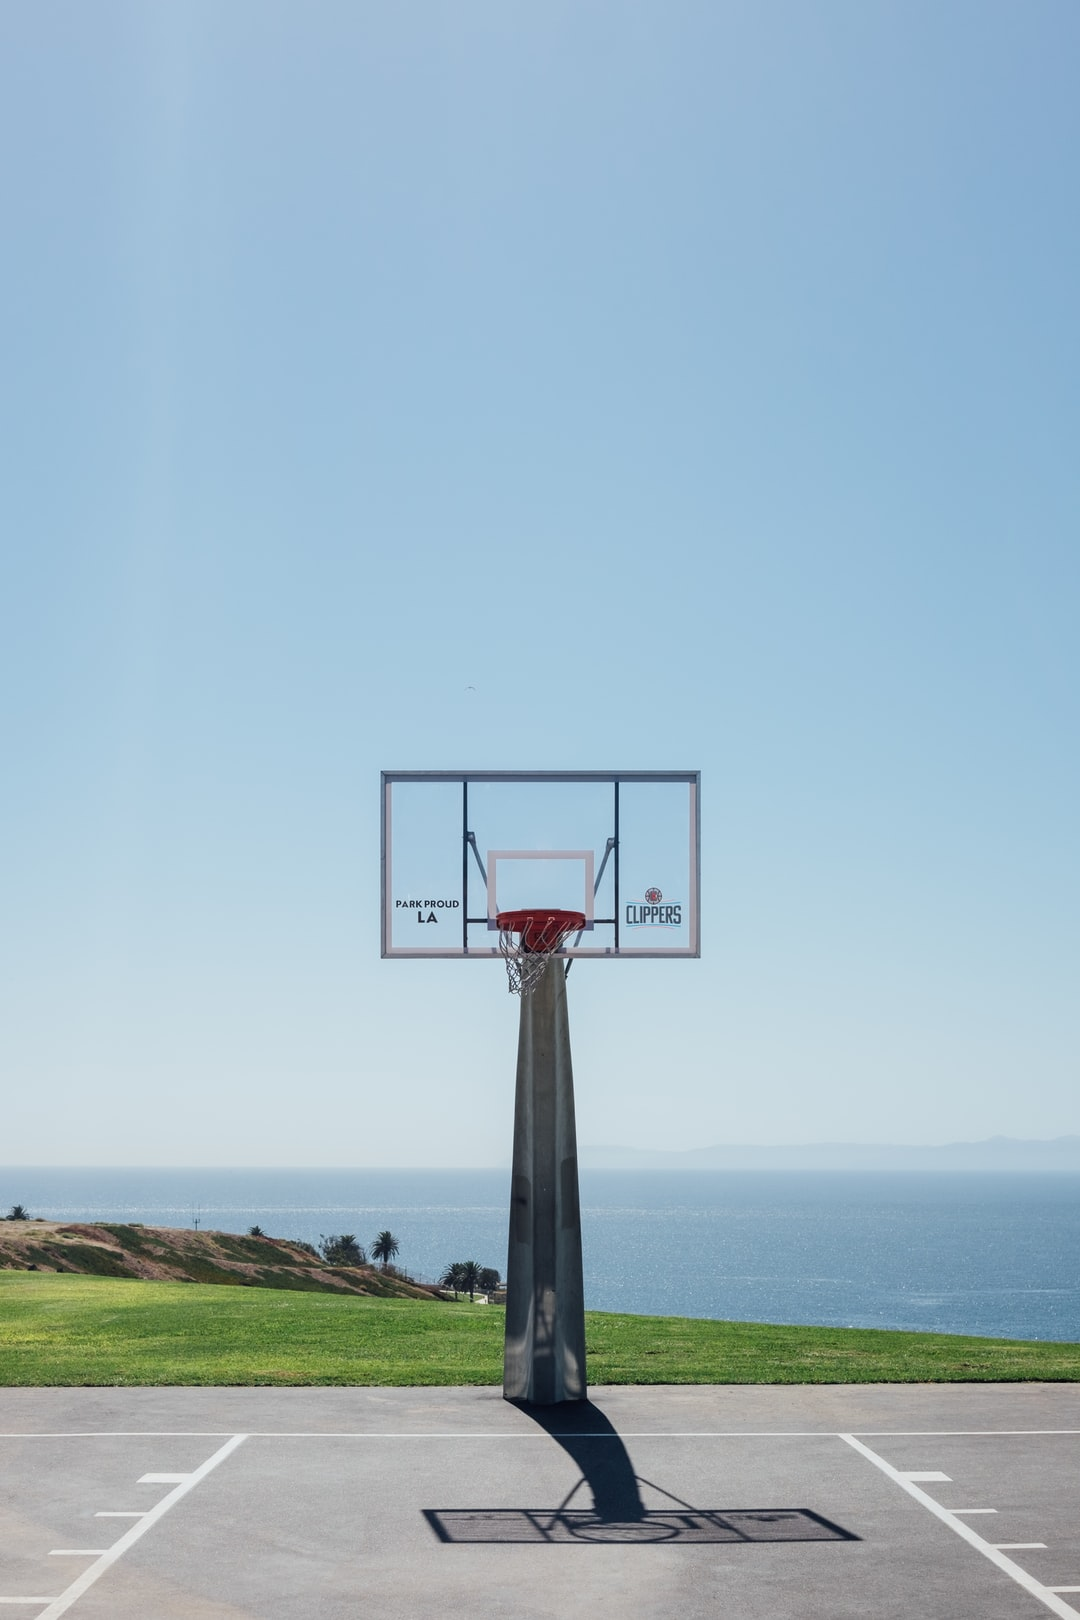 outdoor basketball court near body of water